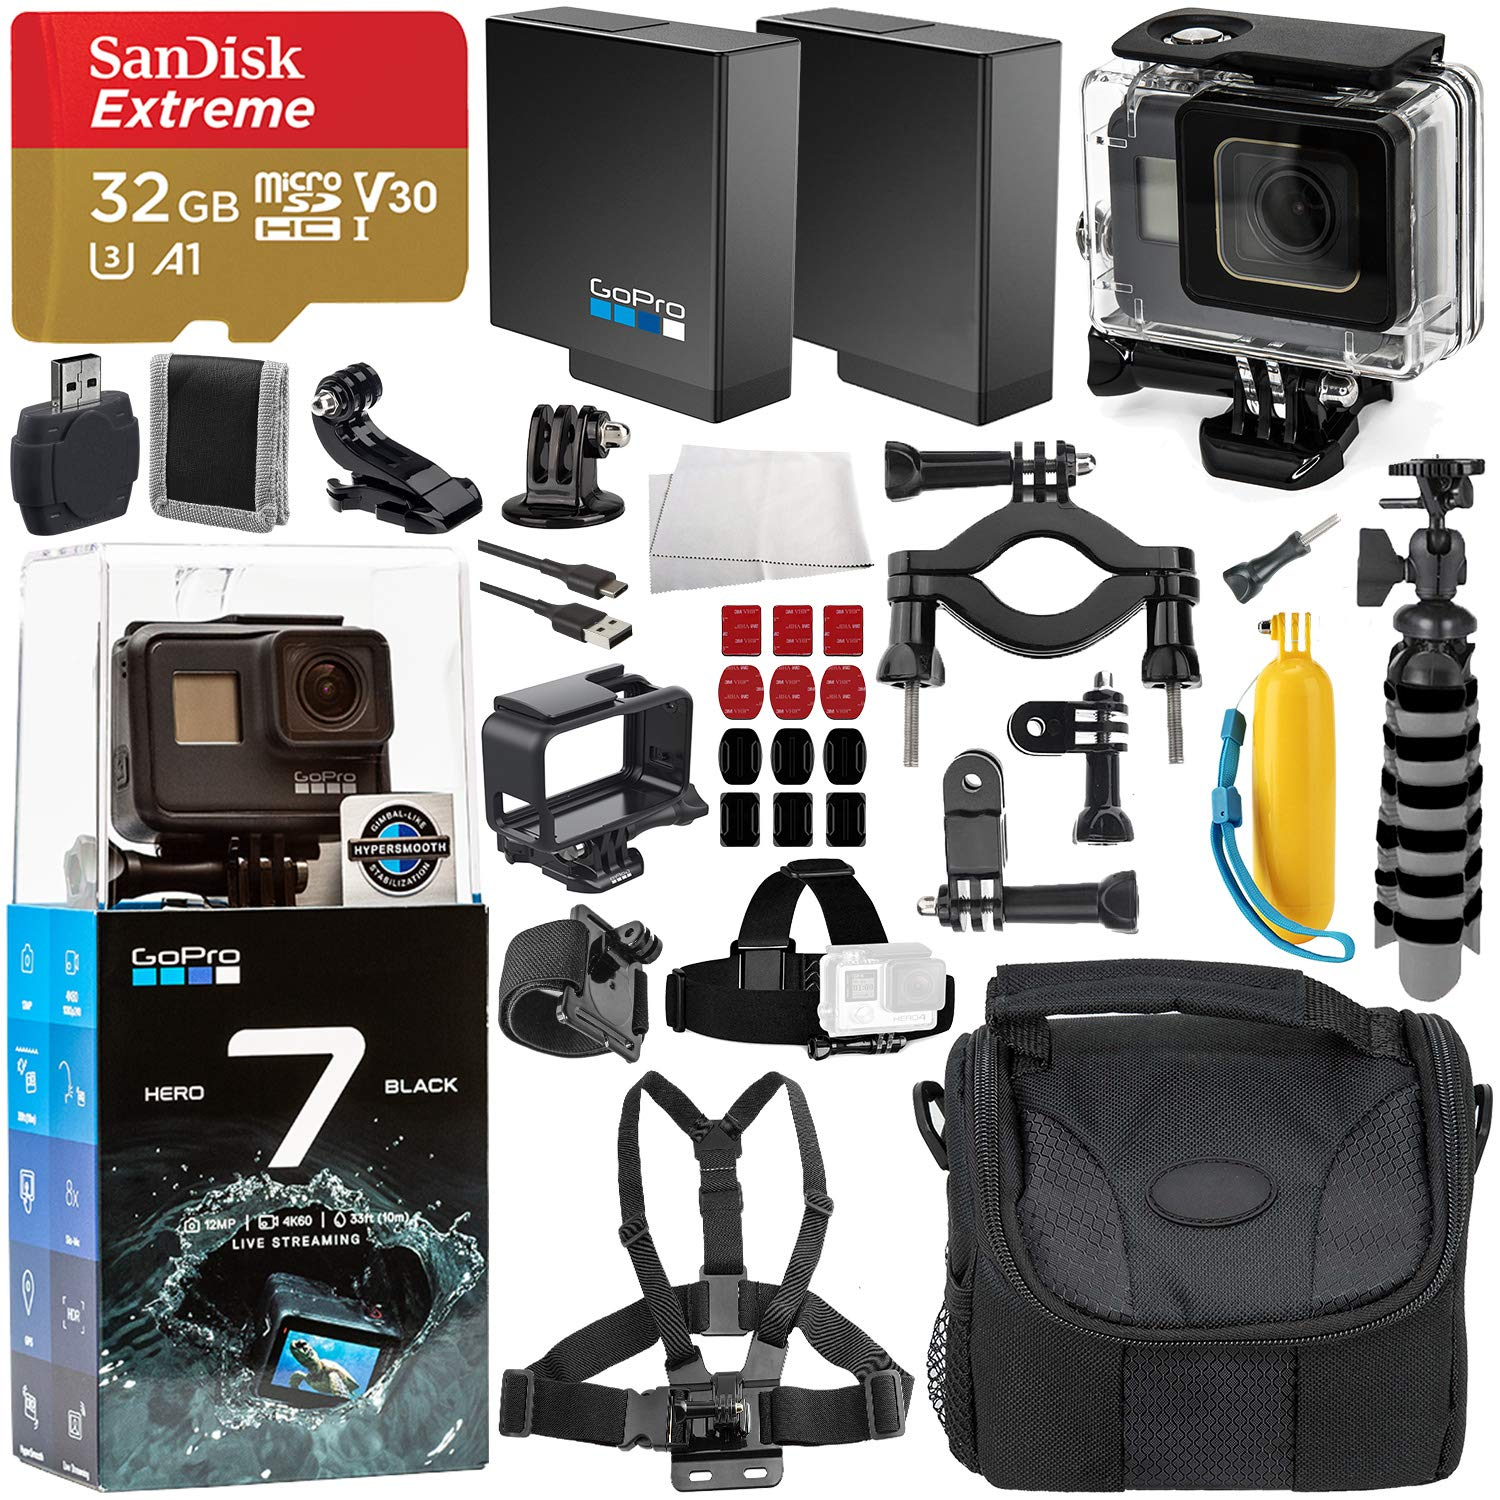 GoPro HERO7 Black Deluxe Bundle Includes: SanDisk Extreme 32GB microSDXC Memory Card + Replacement Battery + Underwater Housing + Carrying Case and More by GoPro